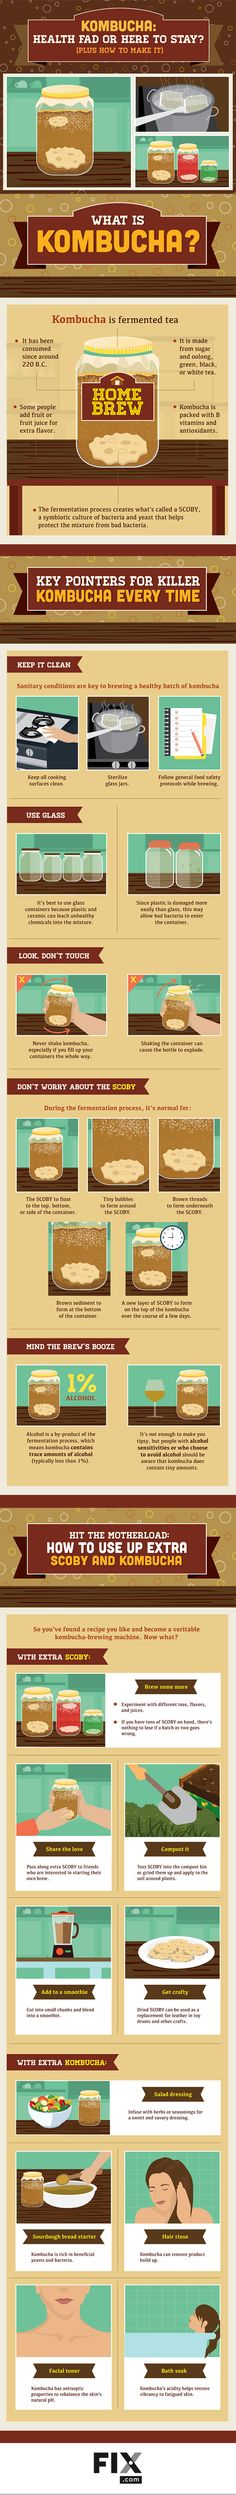 Plus, step-by-step illustrated directions on how to make your own batch.